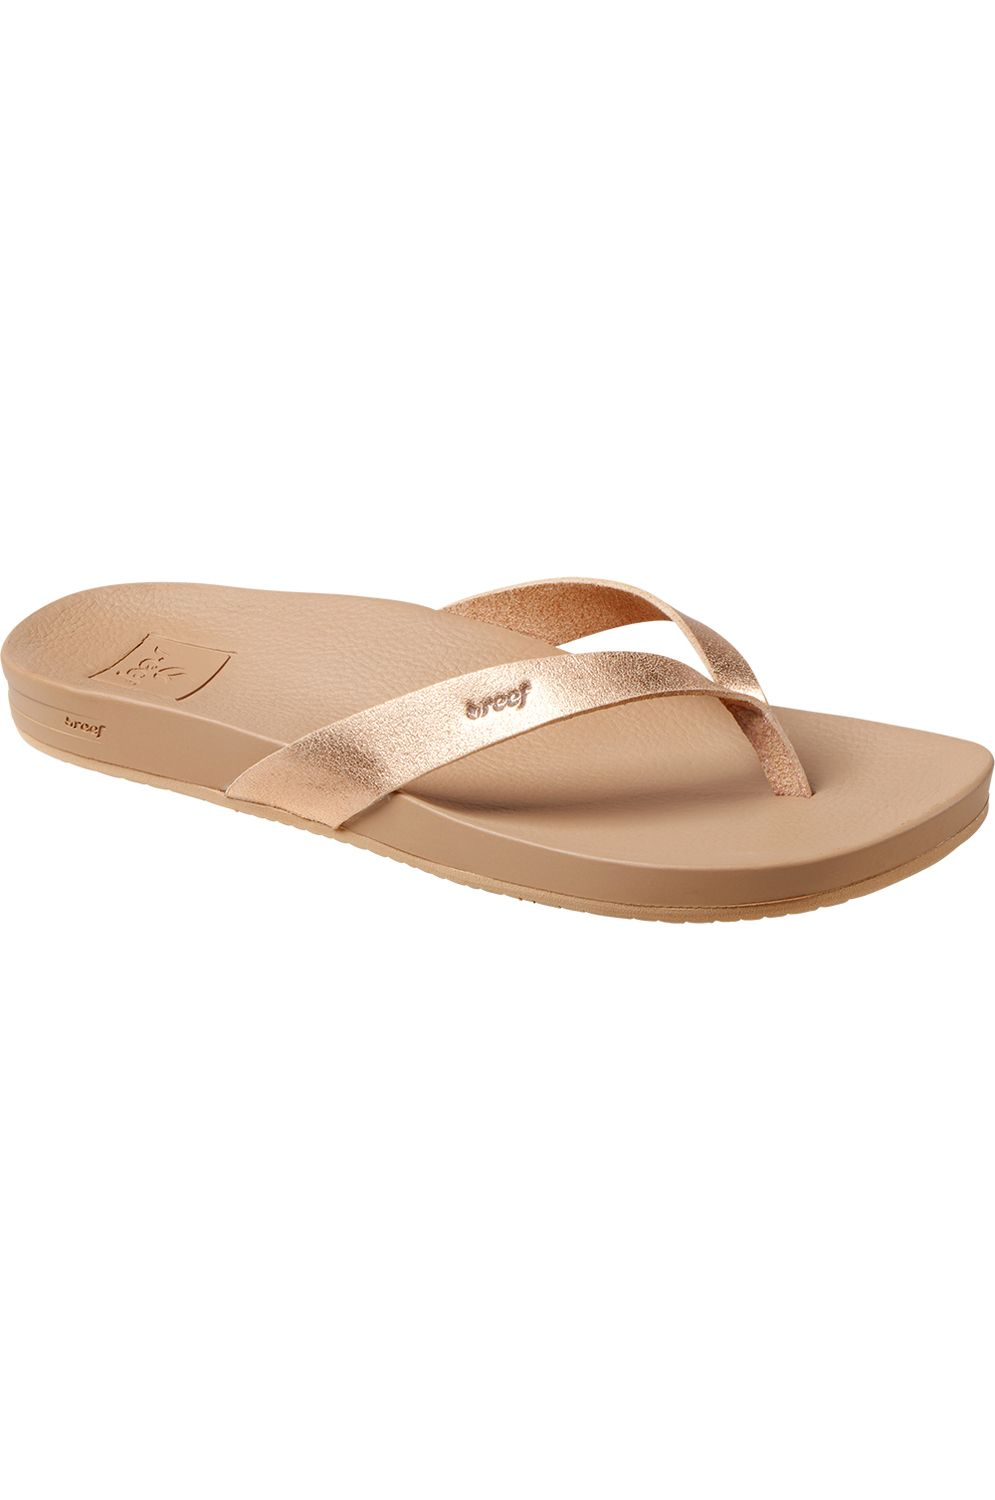 Reef Sandals CUSHION BOUNCE COURT Rose Gold